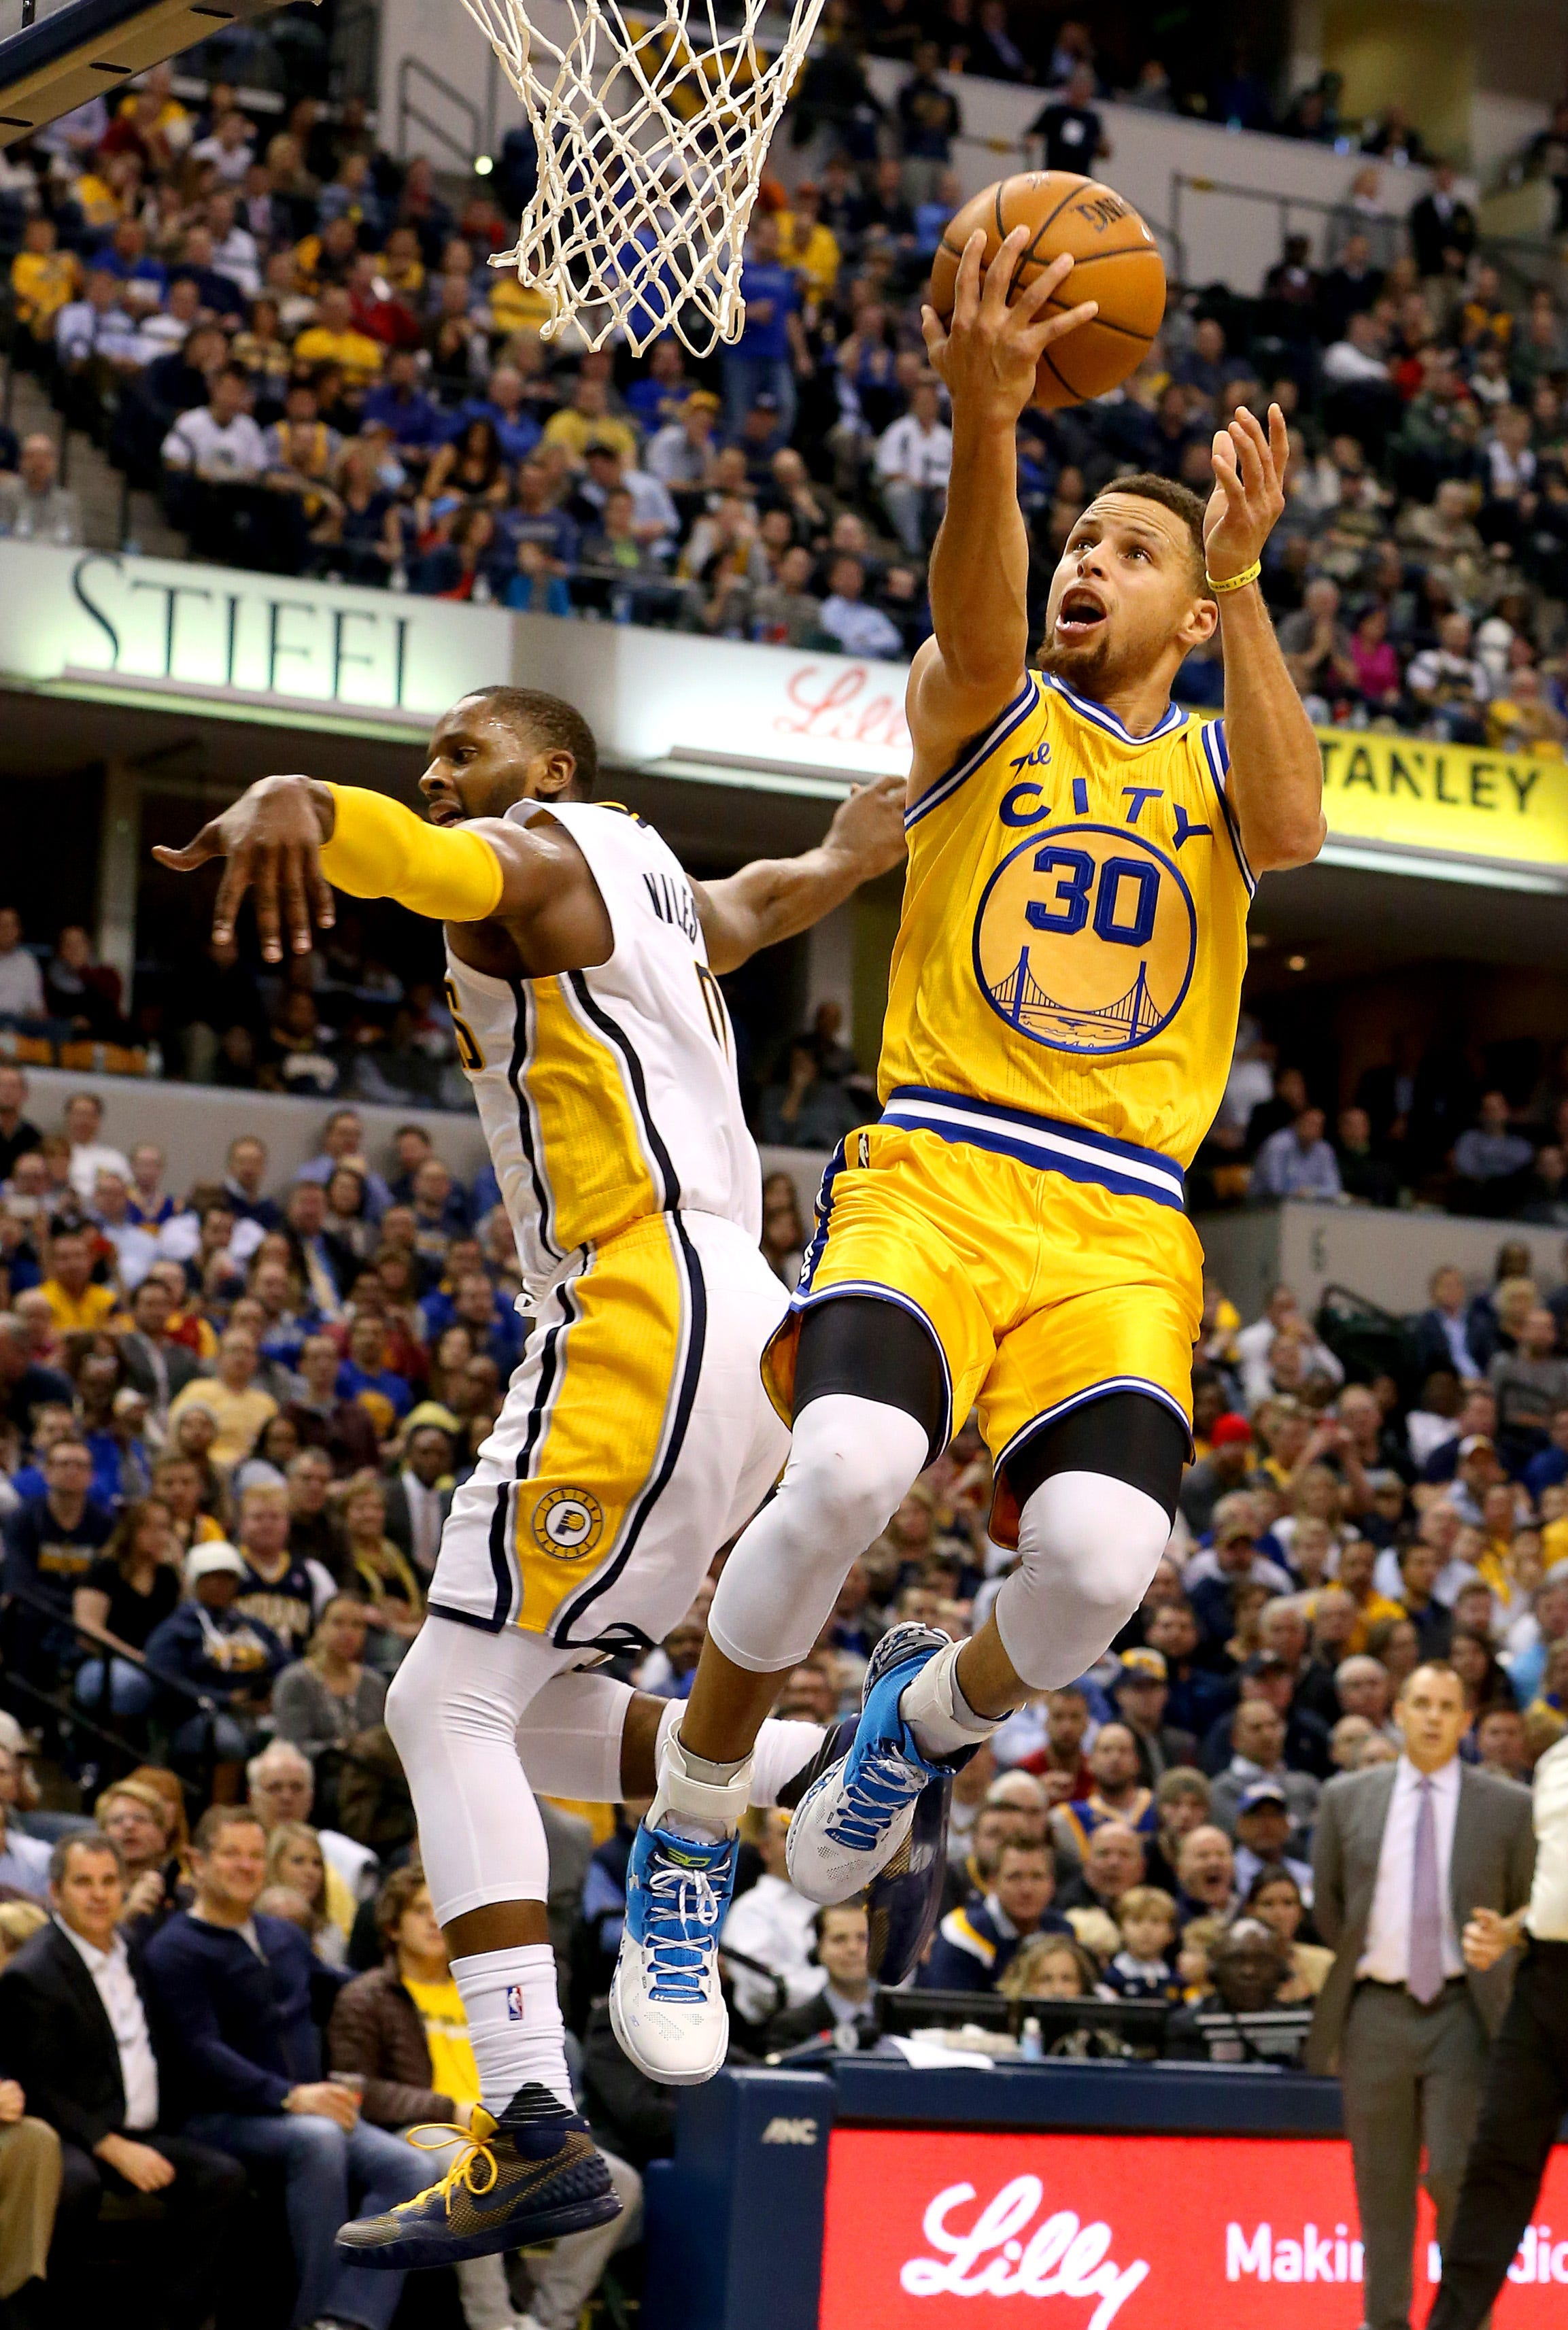 GOLDEN STATE WARRIORS VS INDIANA PACERS Tour Dates 2016 ...